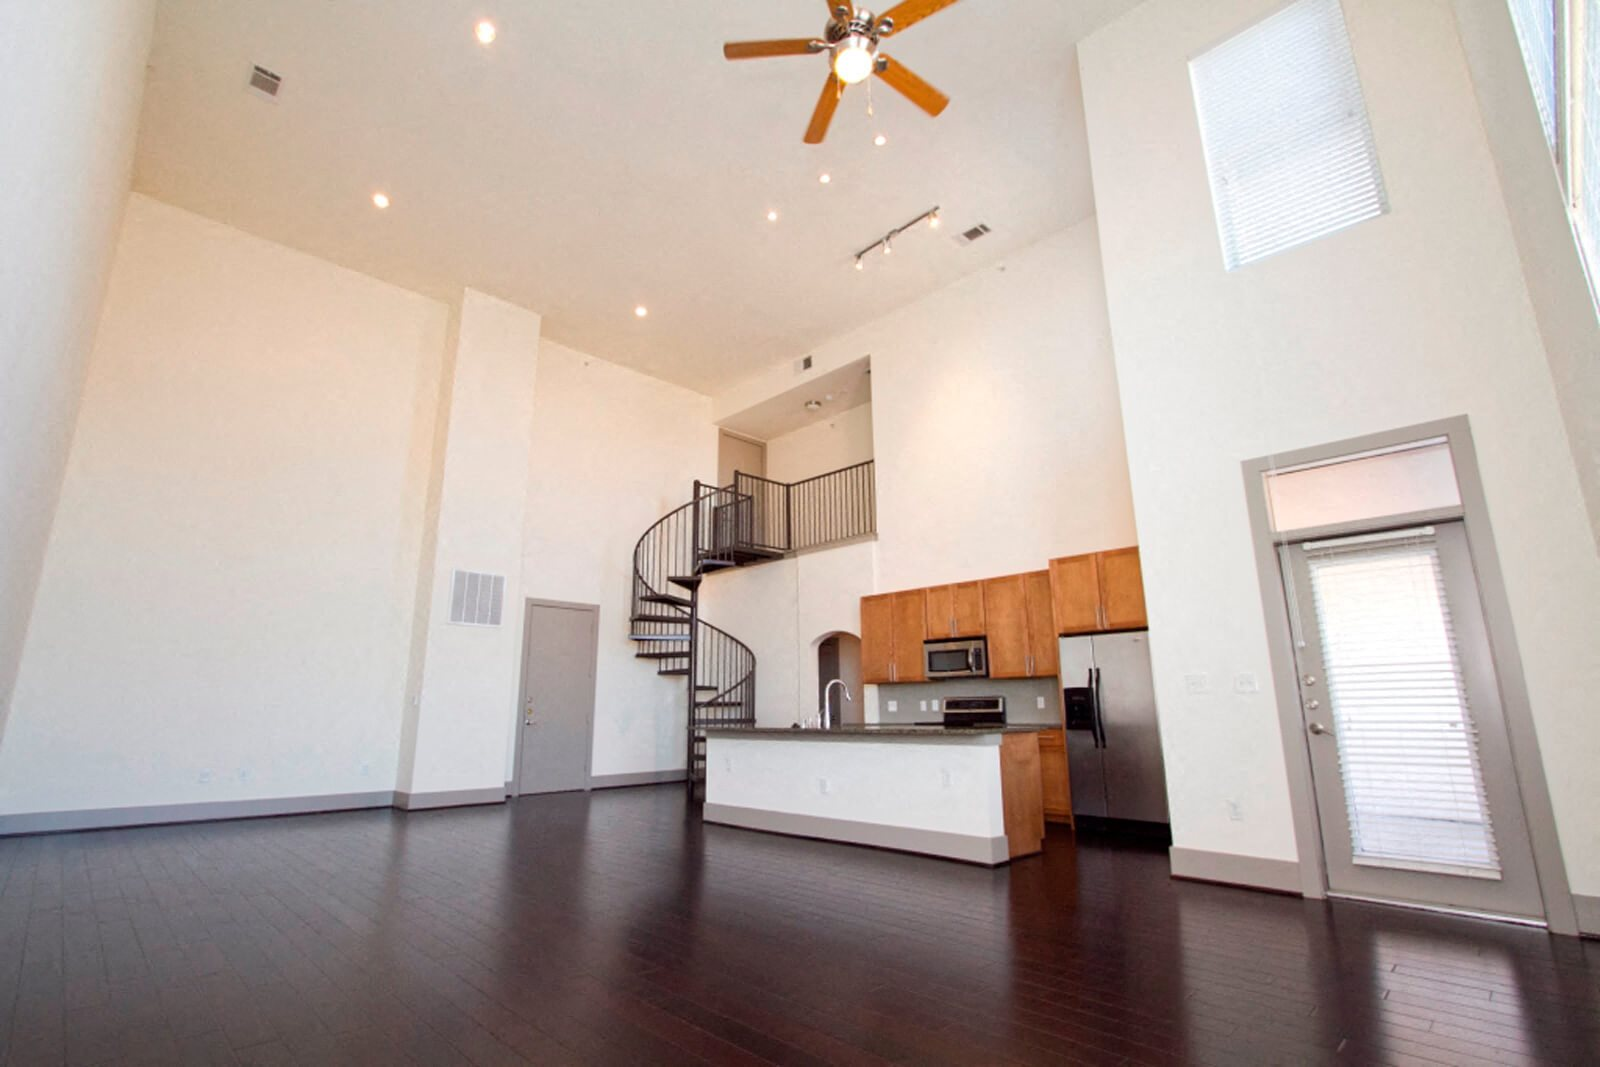 Spiral Staircases in Select Apartments at The Monterey by Windsor, Dallas, 75204